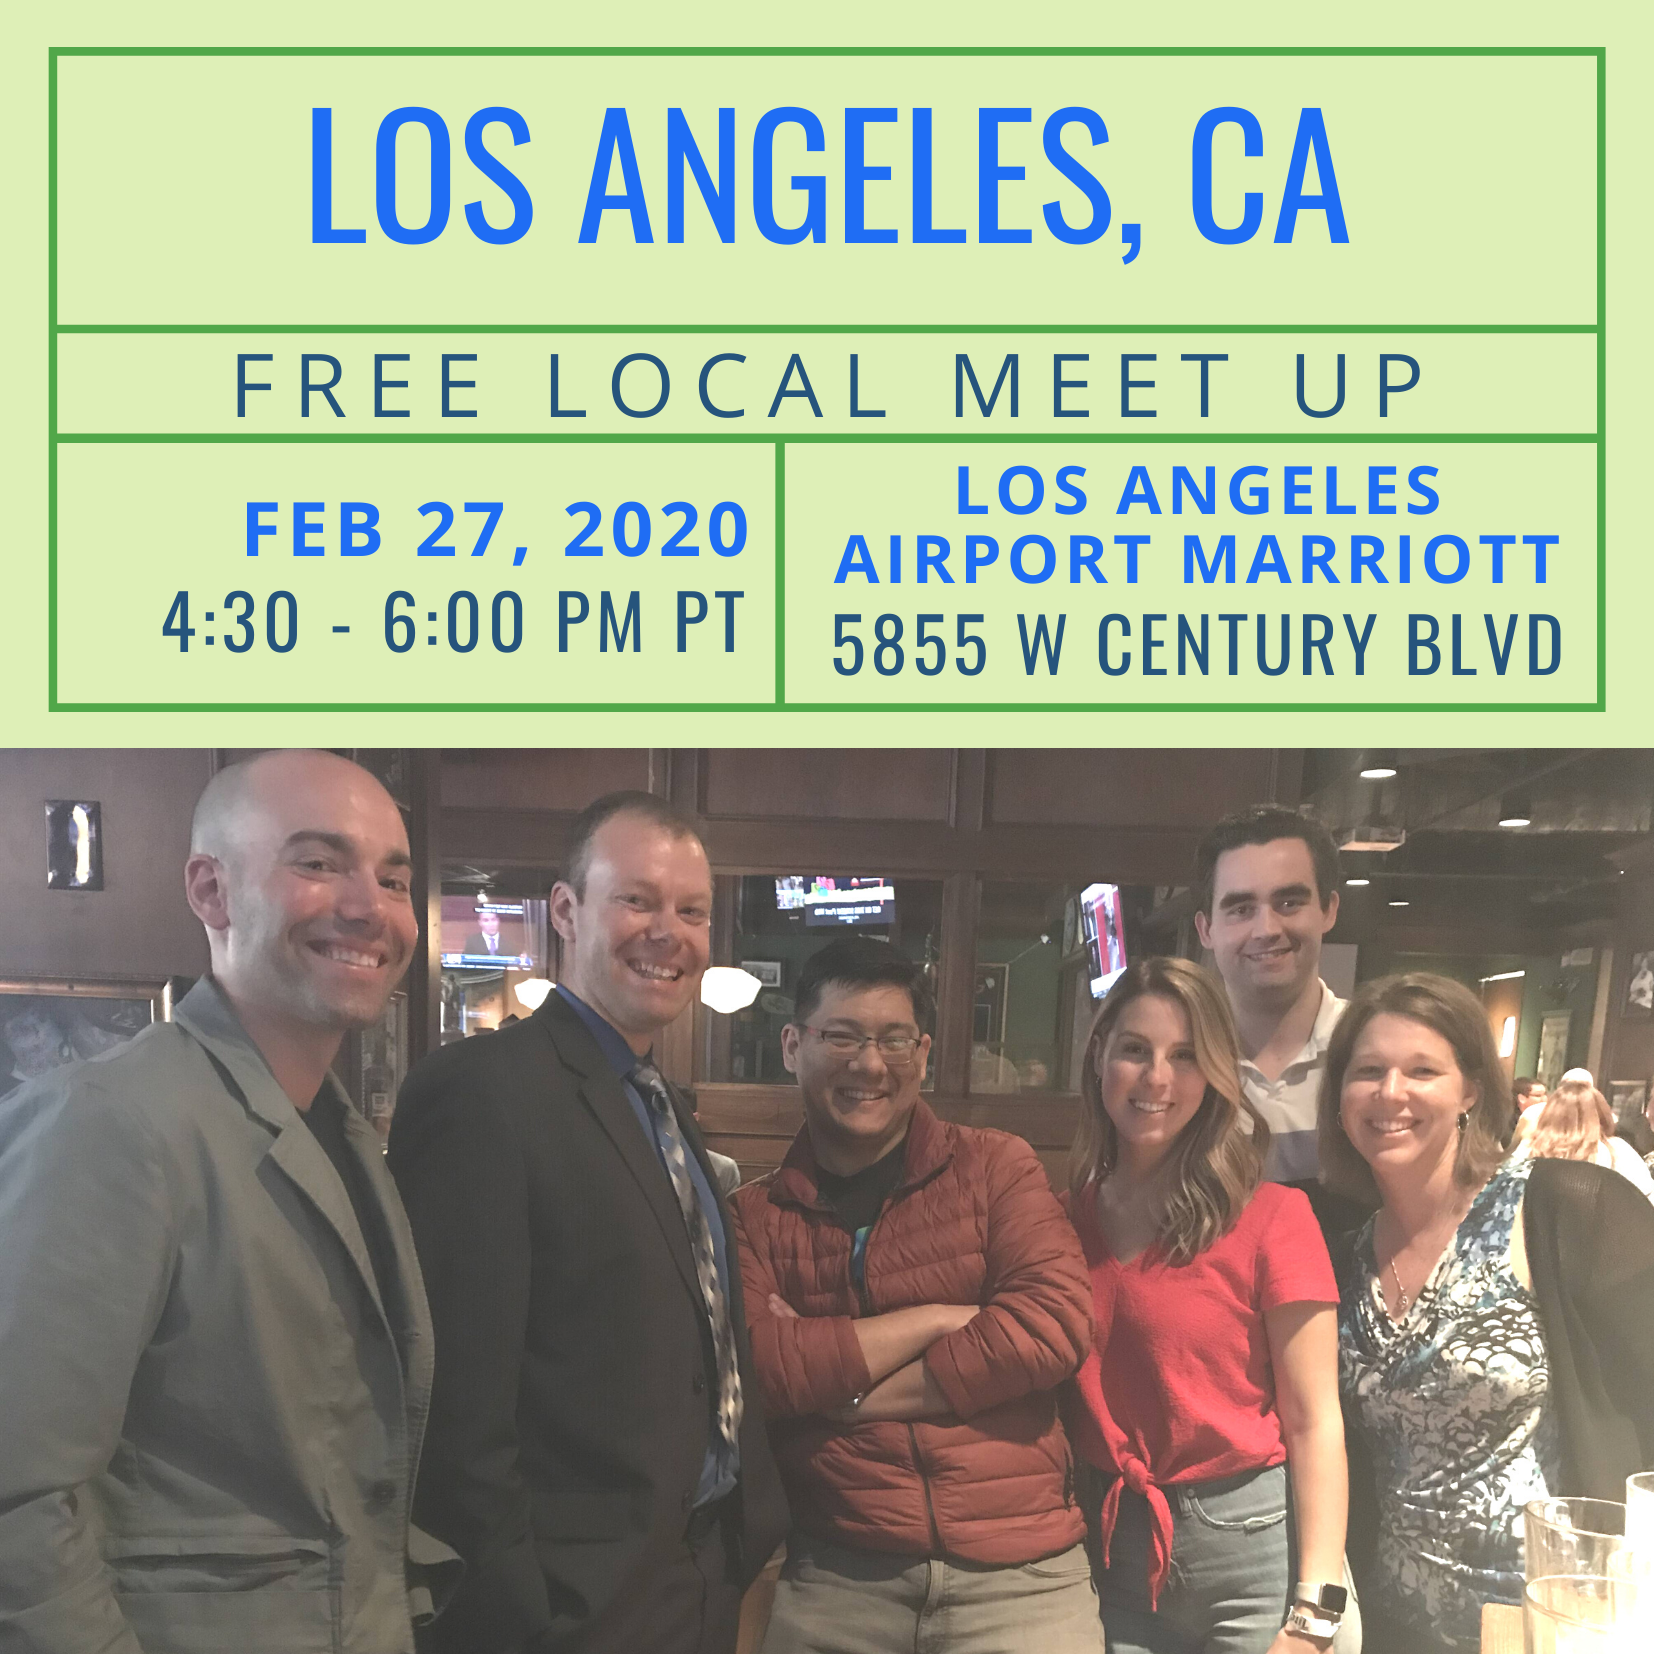 Free Local Meet-Up in Los Angeles on Thursday, February 27